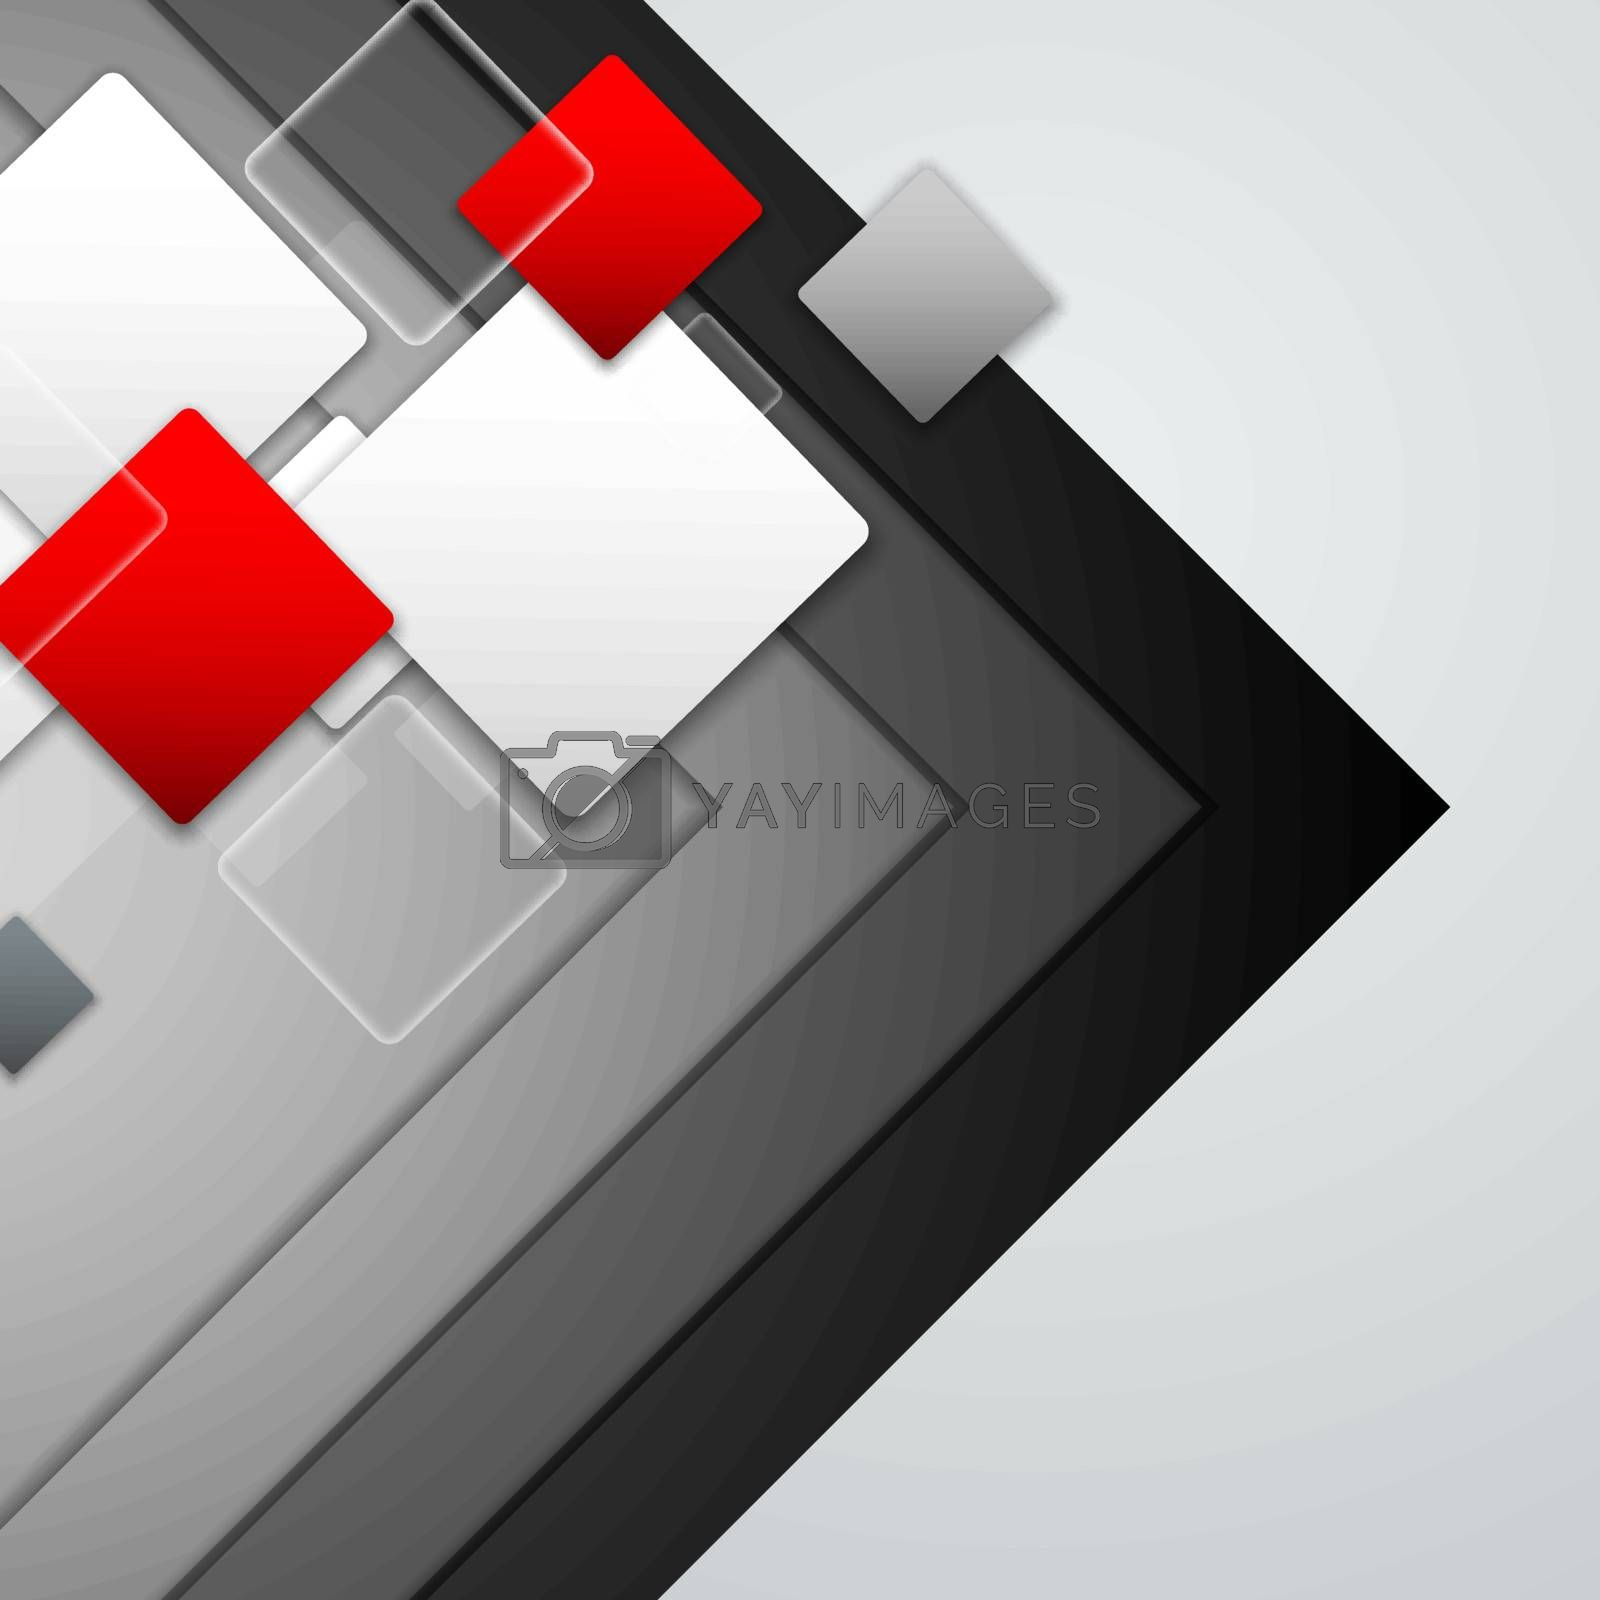 Royalty free image of Vector Overlapping Squares Background by marivlada